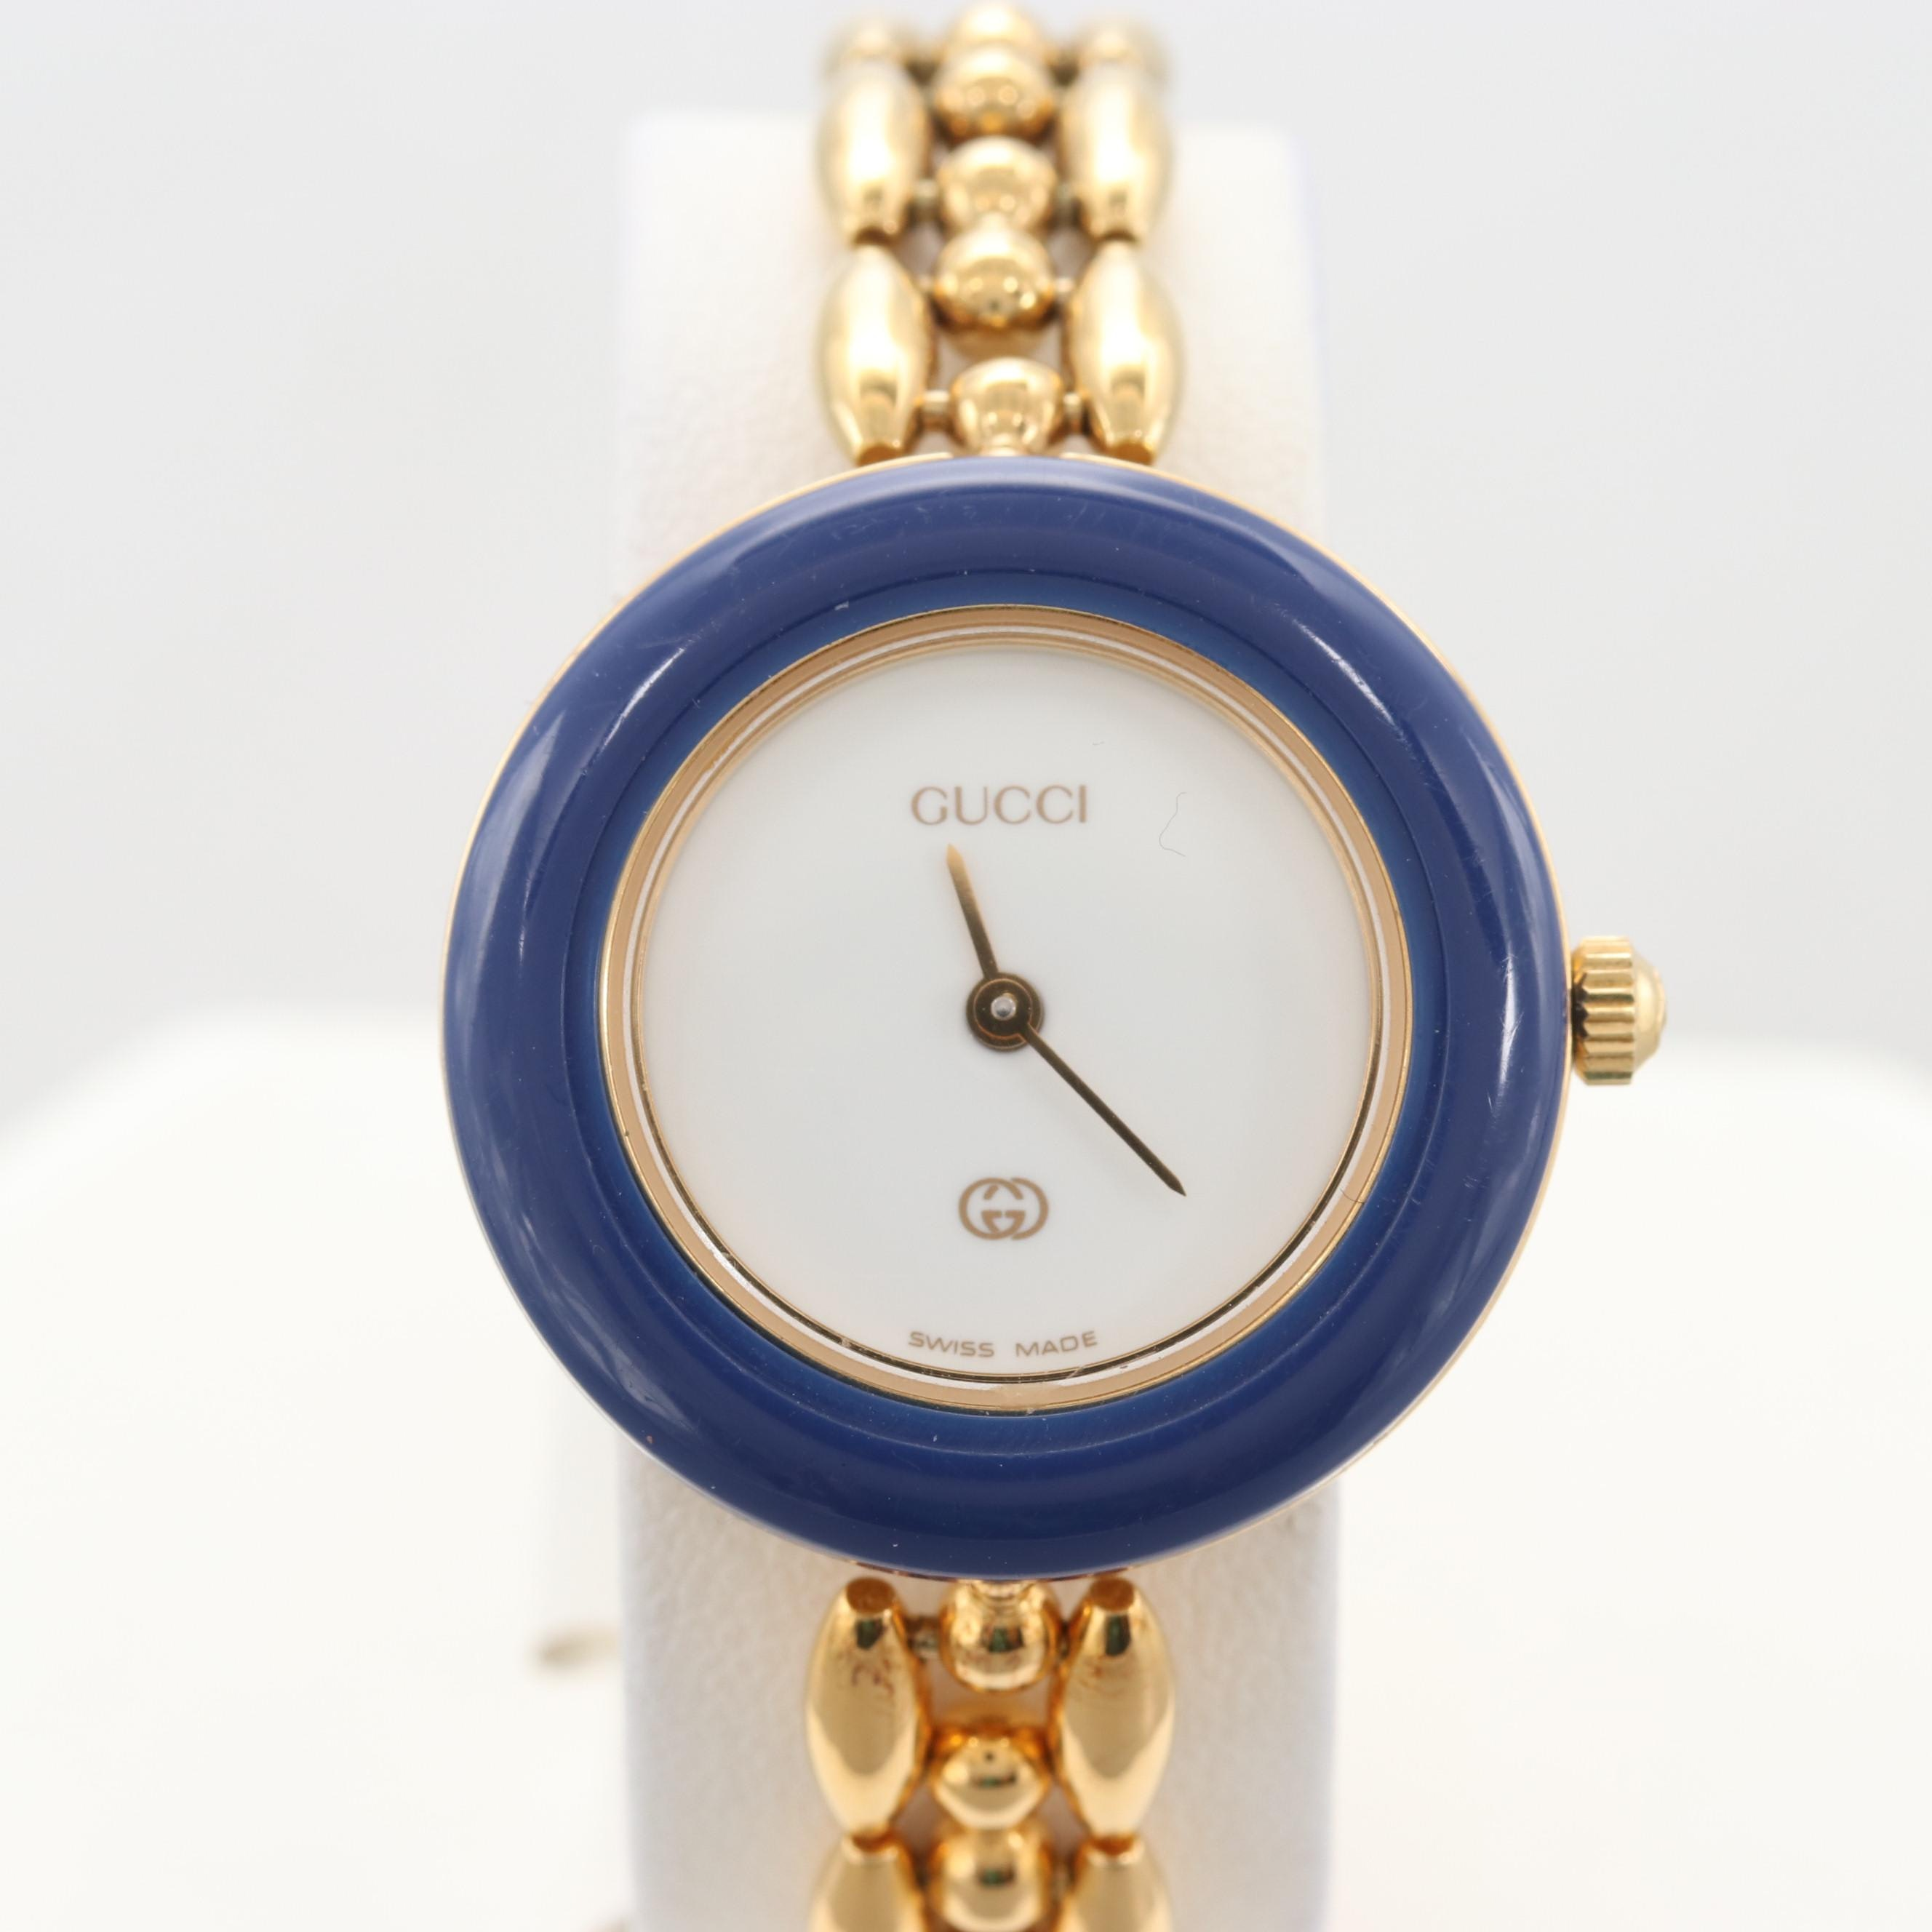 Gucci Gold Tone Wristwatch With Interchangeable Bezels